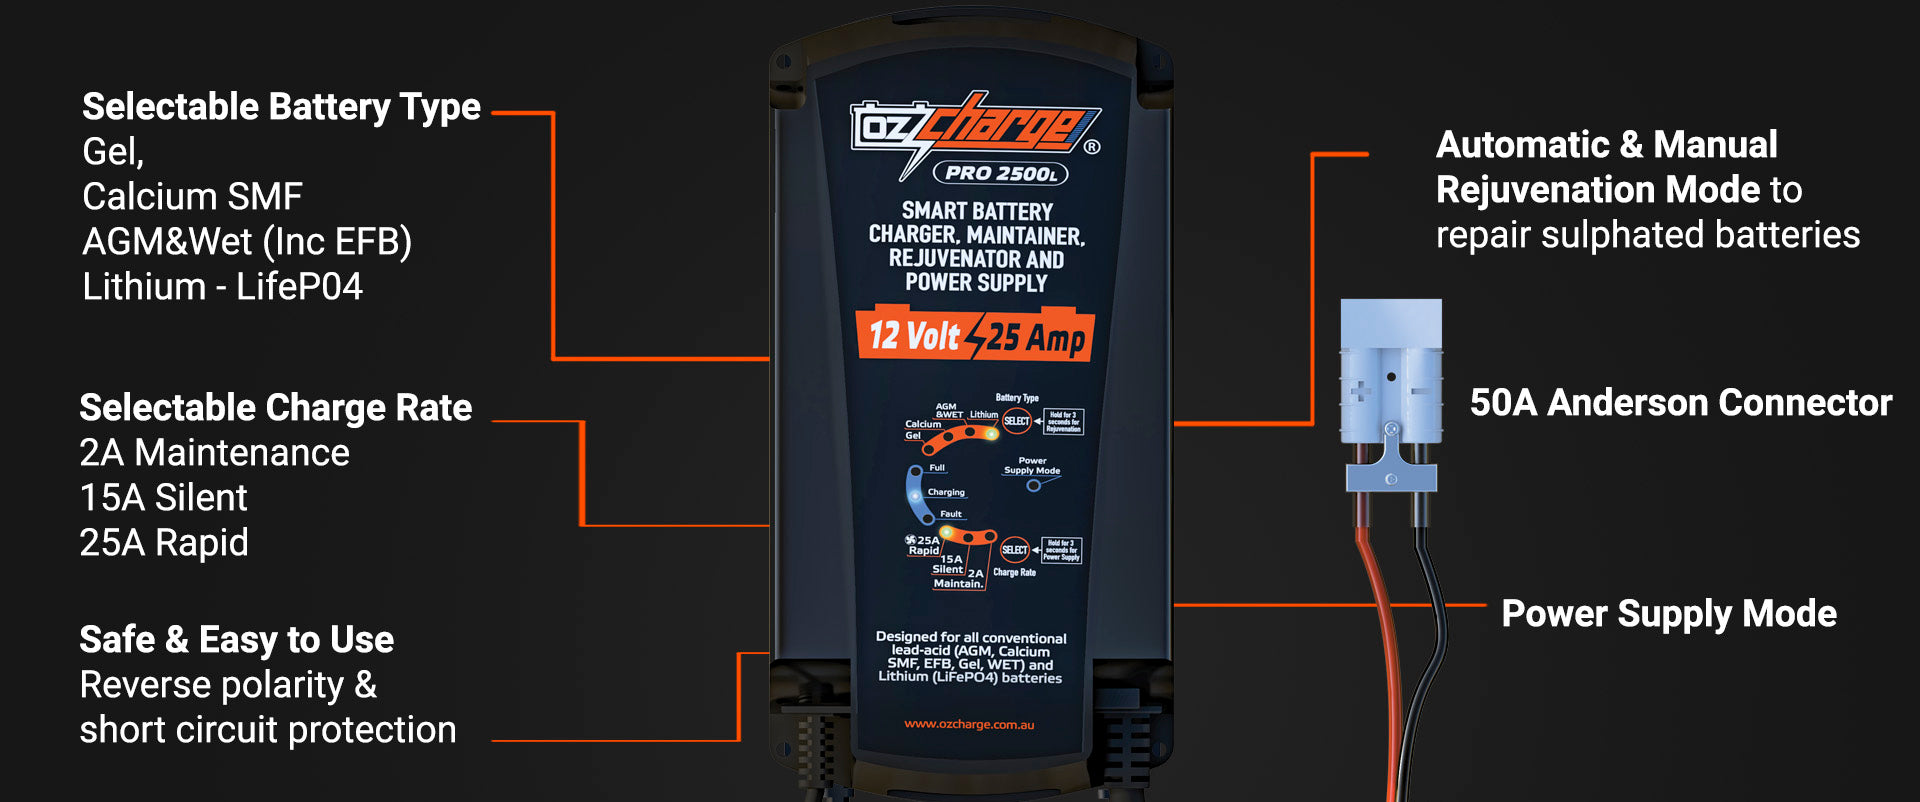 OzCharge Pro2500L Lithium 25A Battery Charger and maintainer